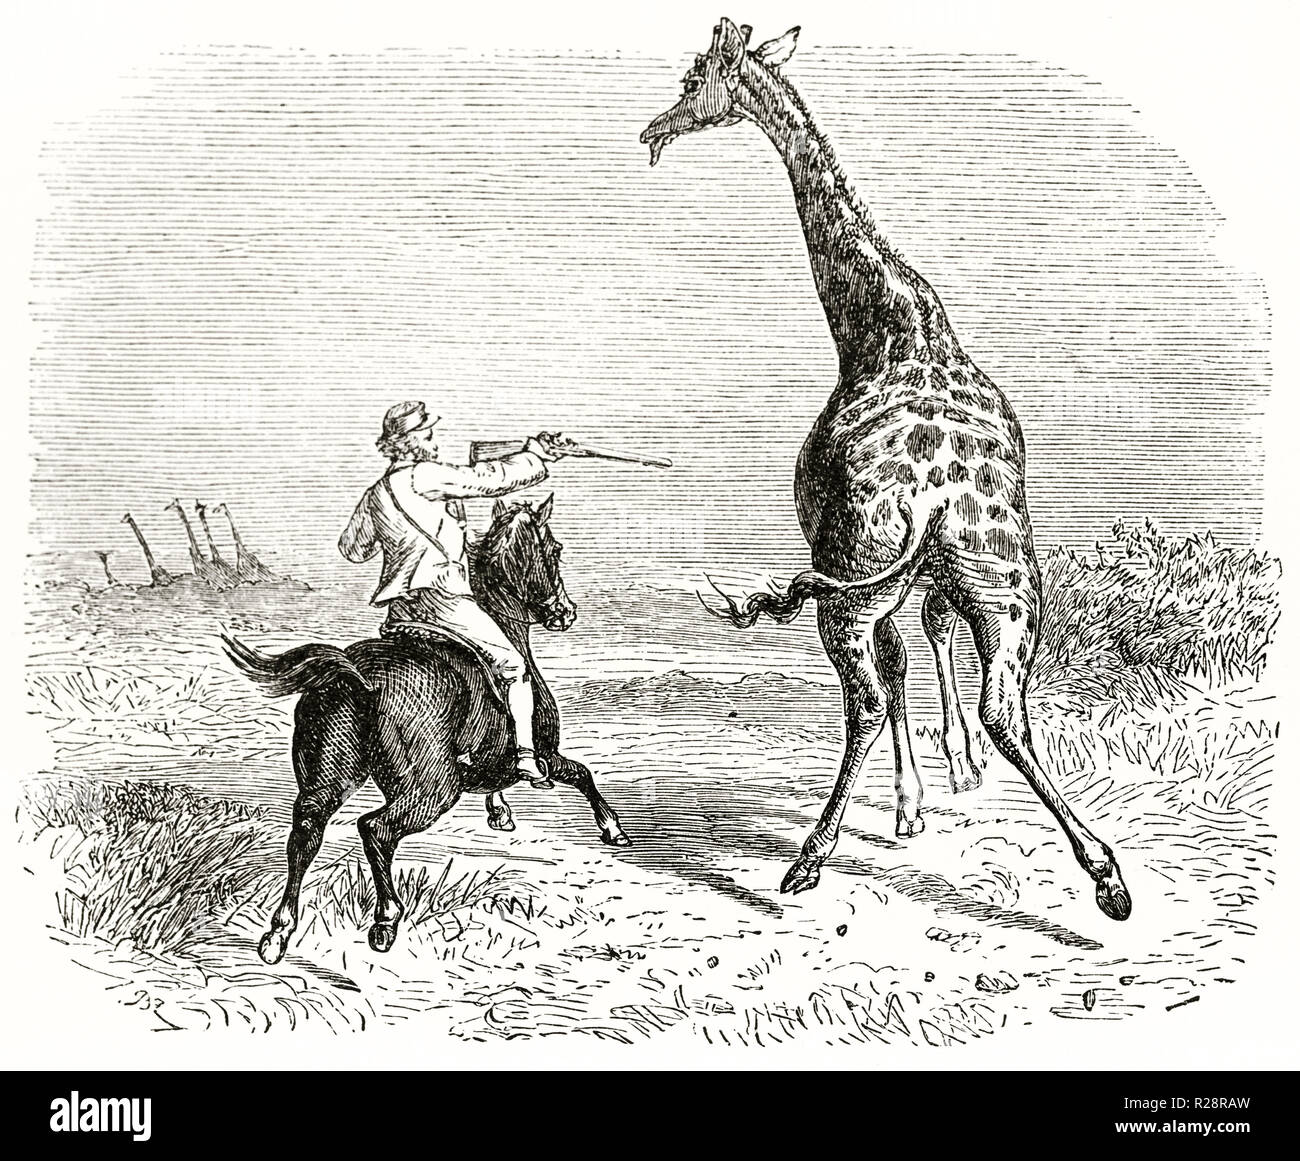 Old illustration depicting hunter Charles Baldwin hunting giraffe. By unidentified author, publ. on le Tour du Monde, Paris, 1863 Stock Photo